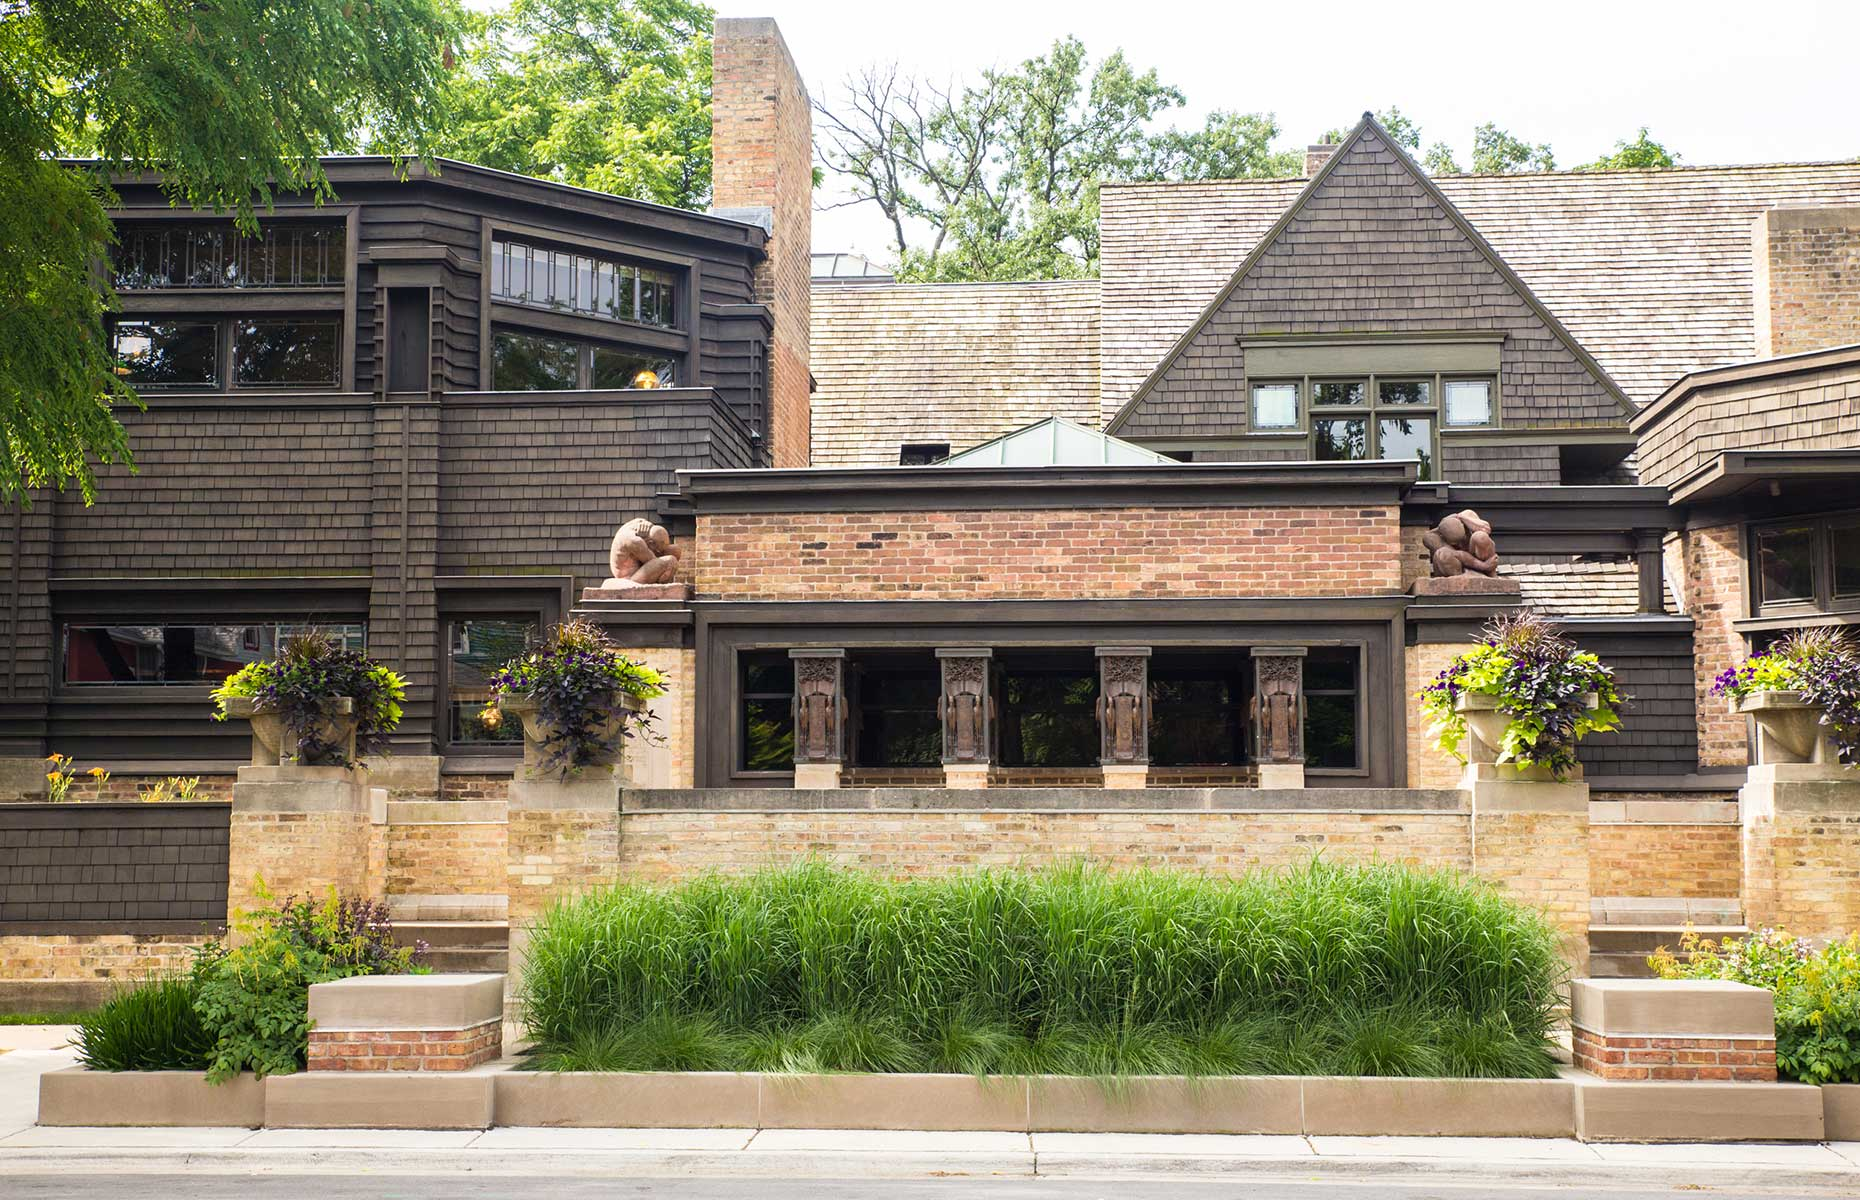 Frank Lloyd Wright's home and studio in Oak Park, pictured from the outside